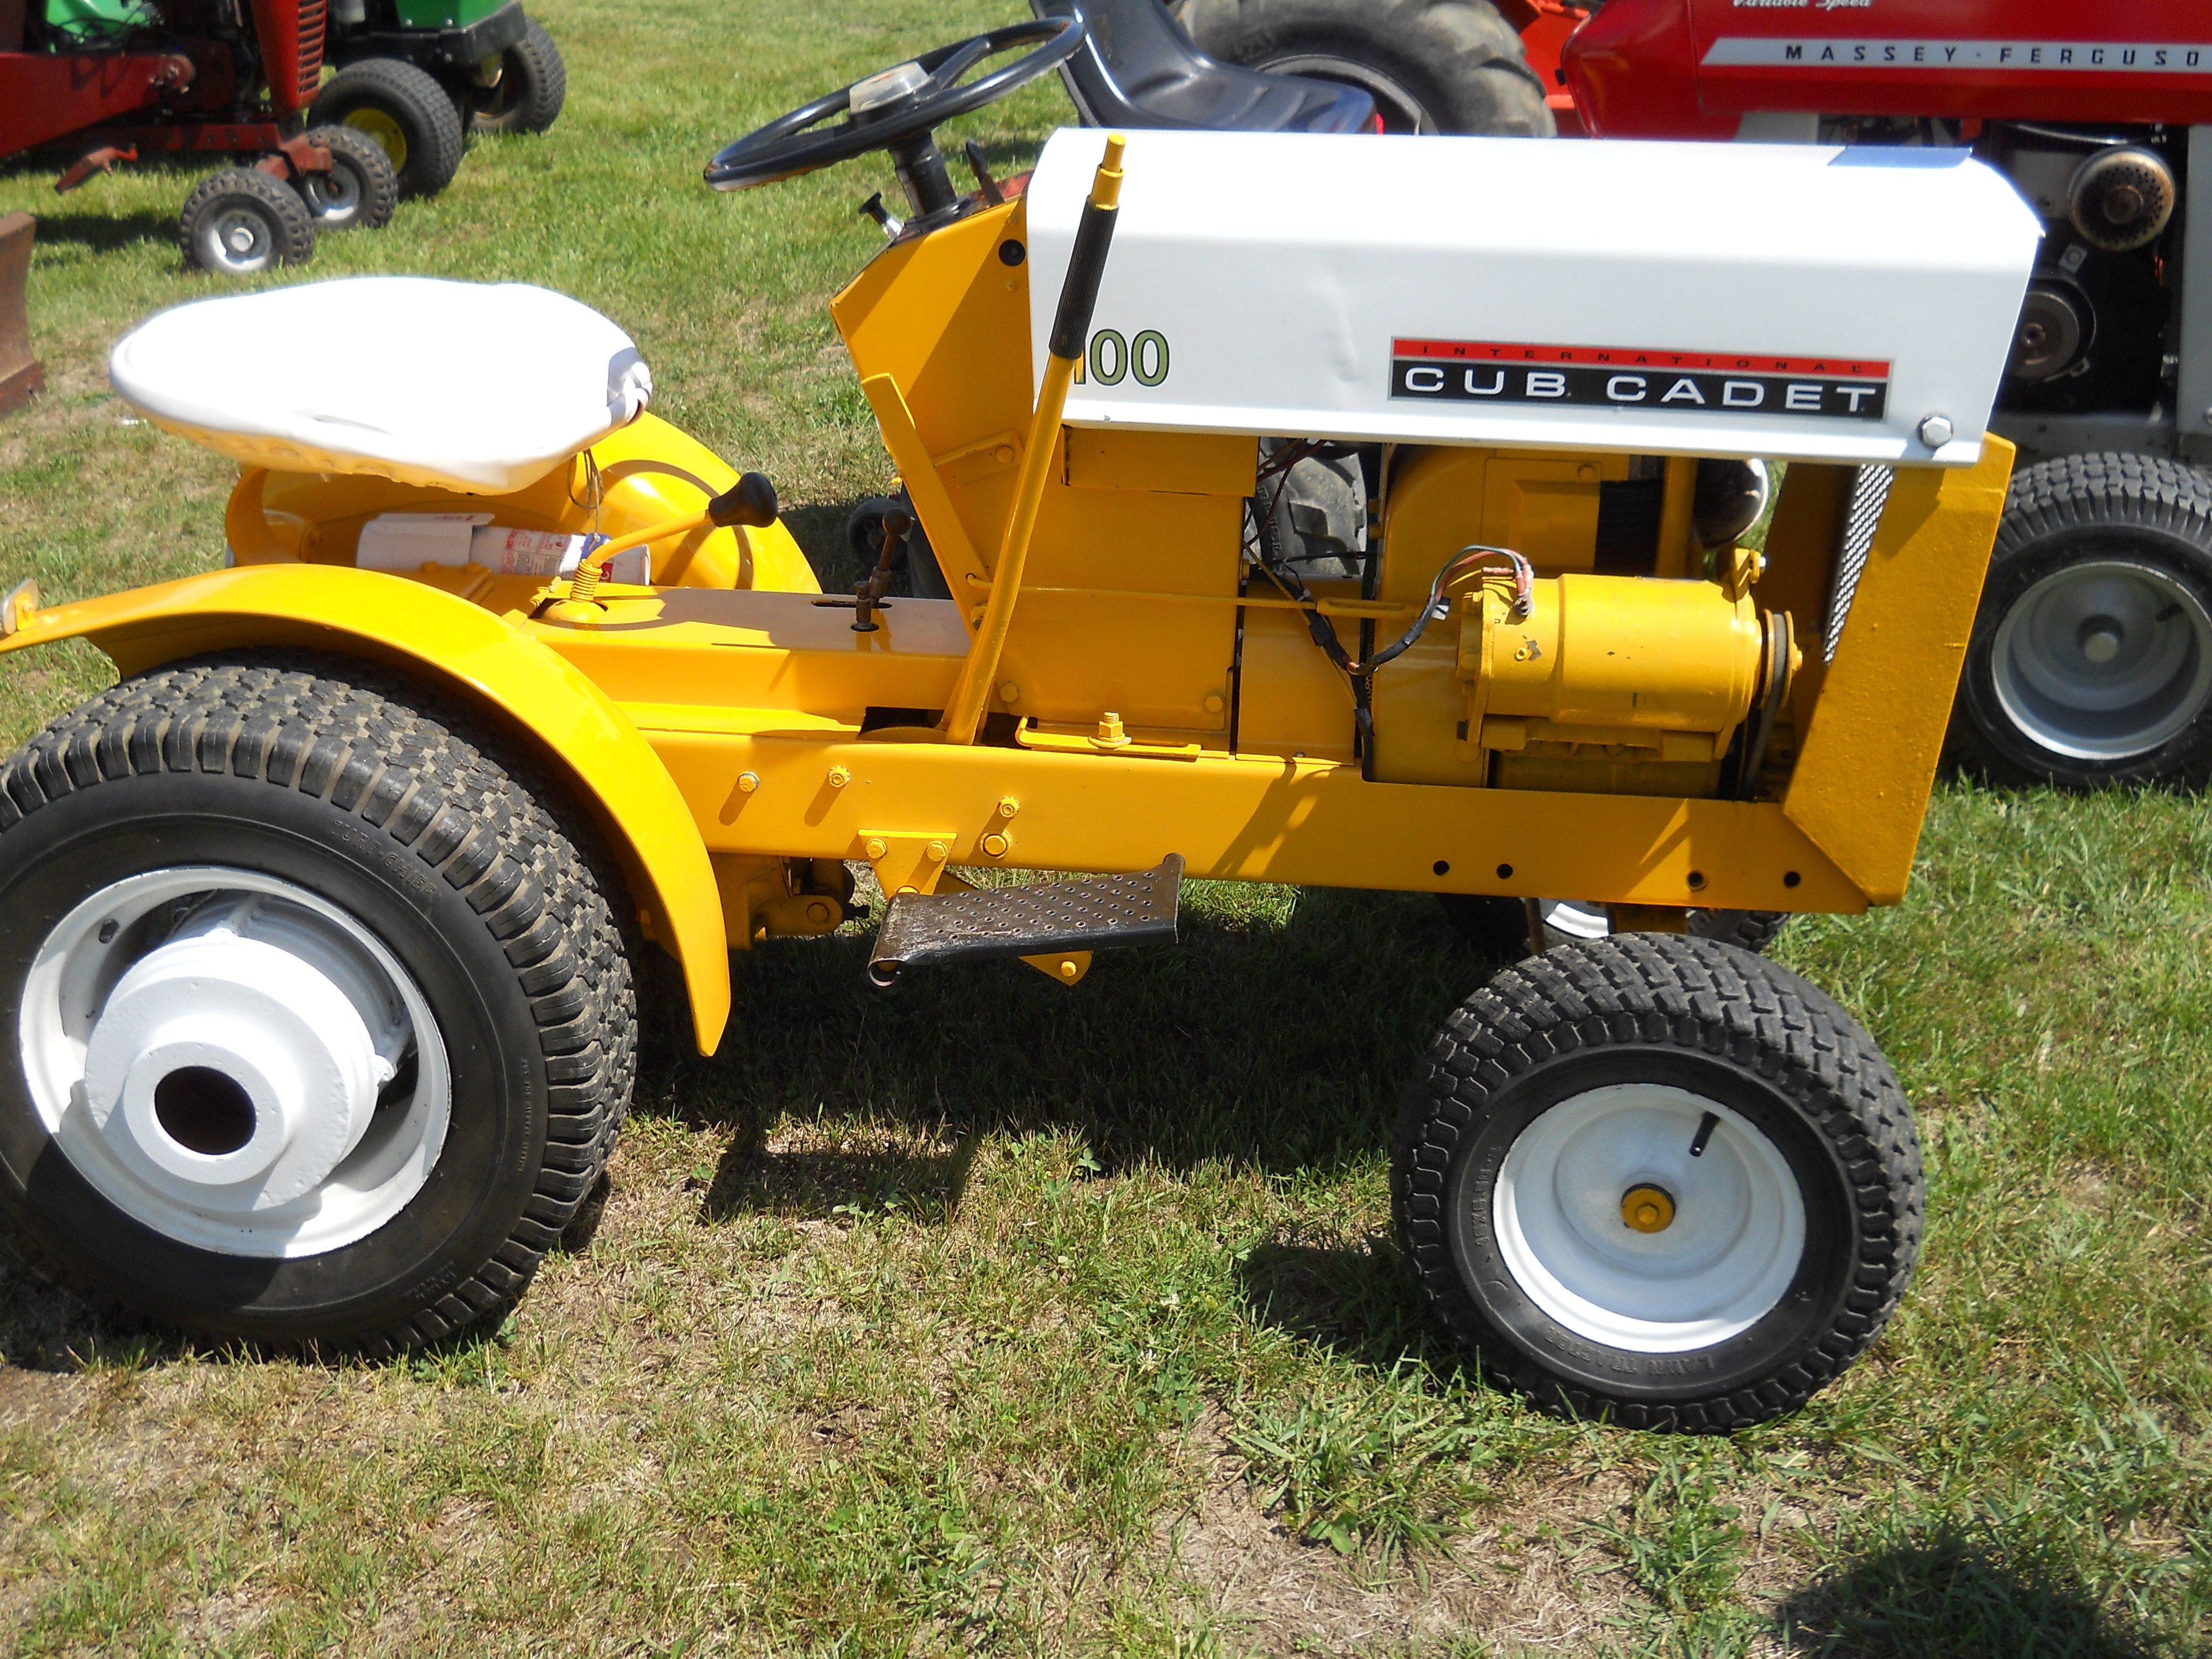 cub cadet 100 tractor lawn mowers very small tractors. Black Bedroom Furniture Sets. Home Design Ideas